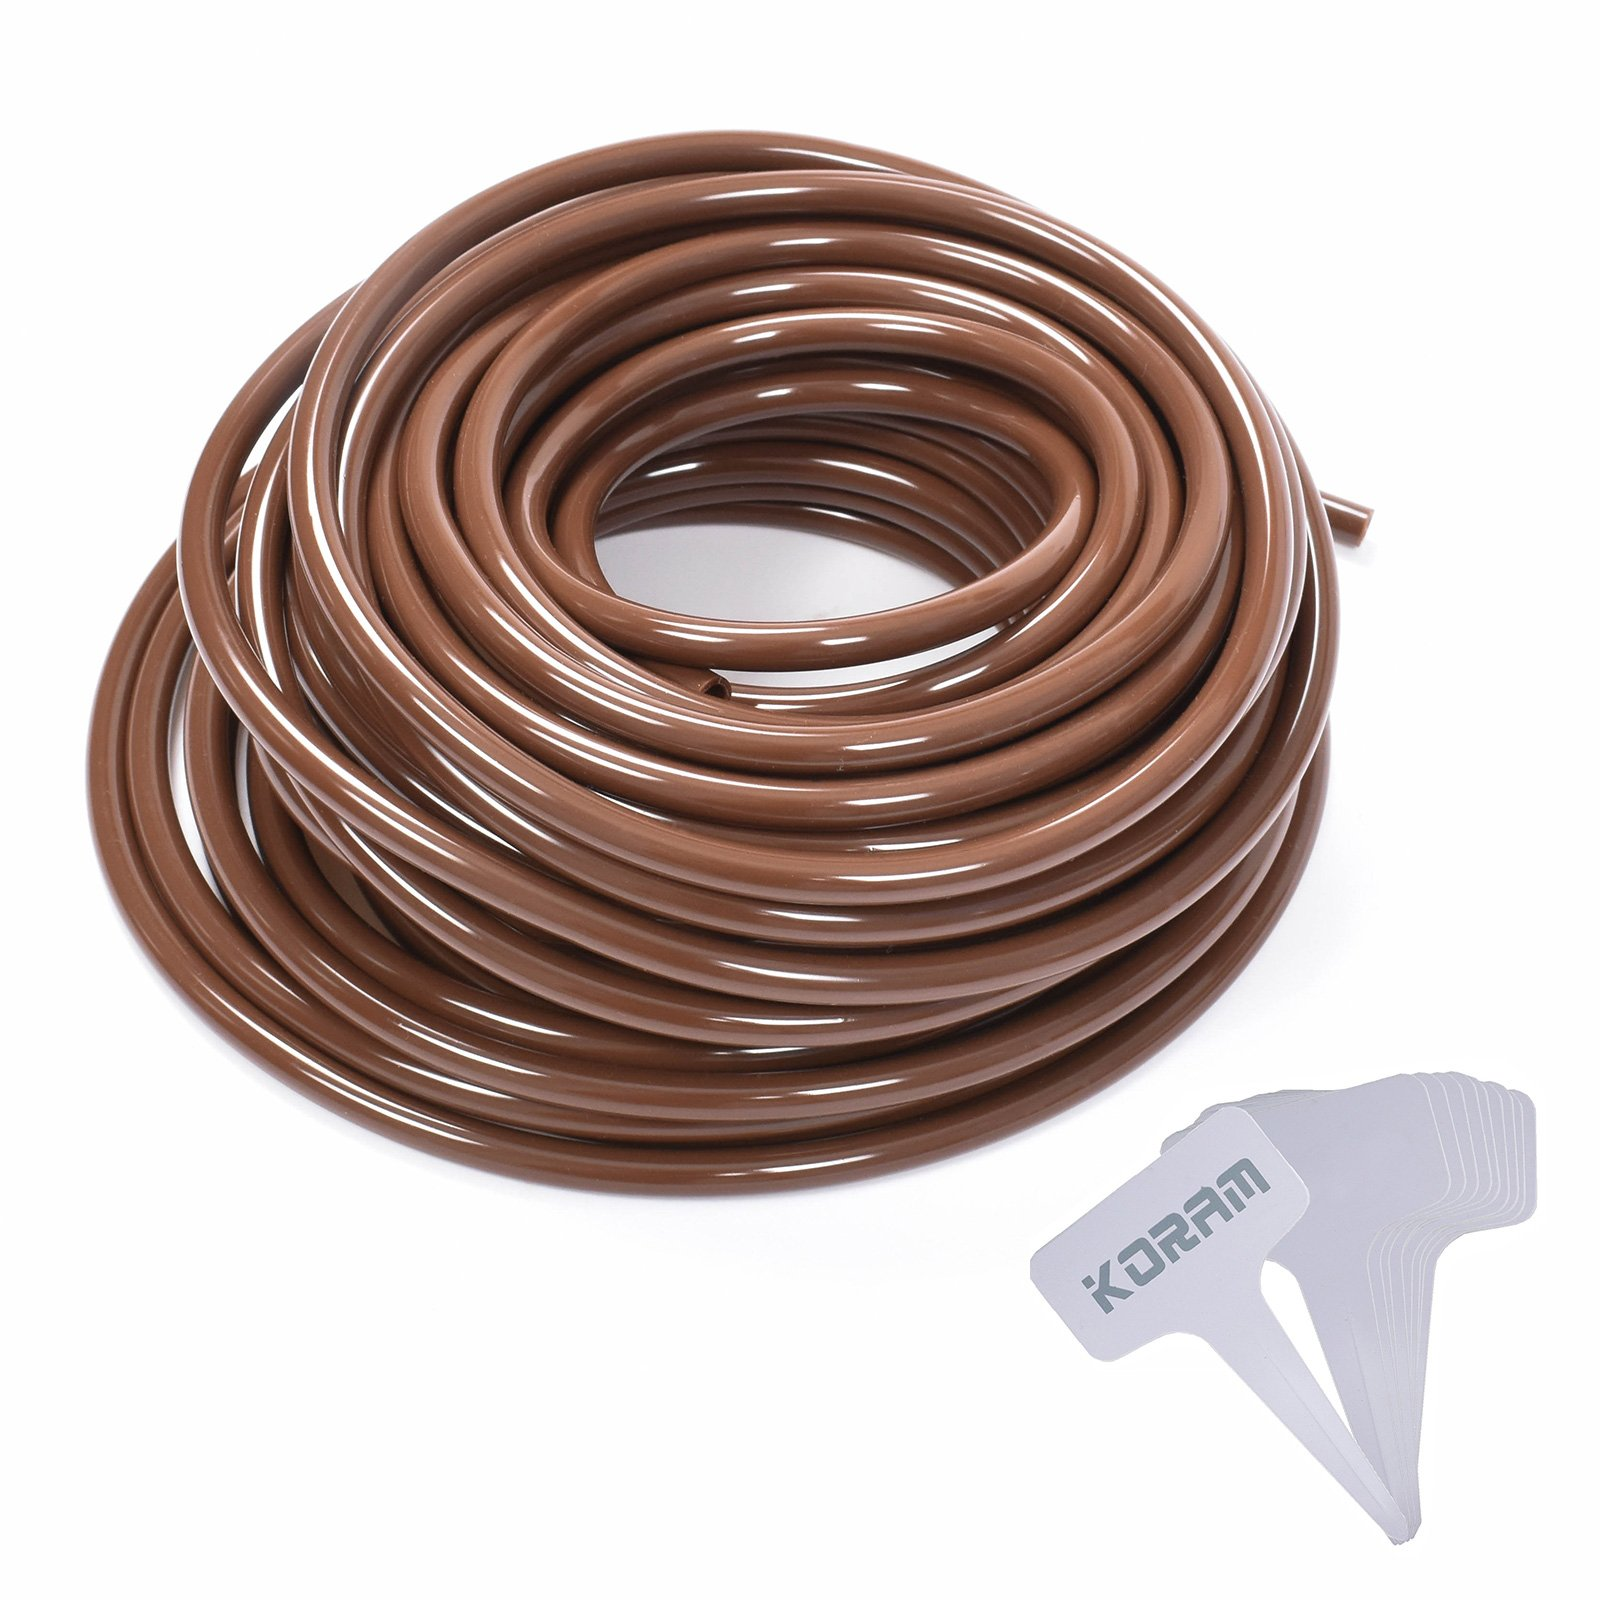 KORAM Drip Irrigation 1/4 Blank Distribution Tubing Drip Watering Hose 100ft Roll with Plant Garden Labels